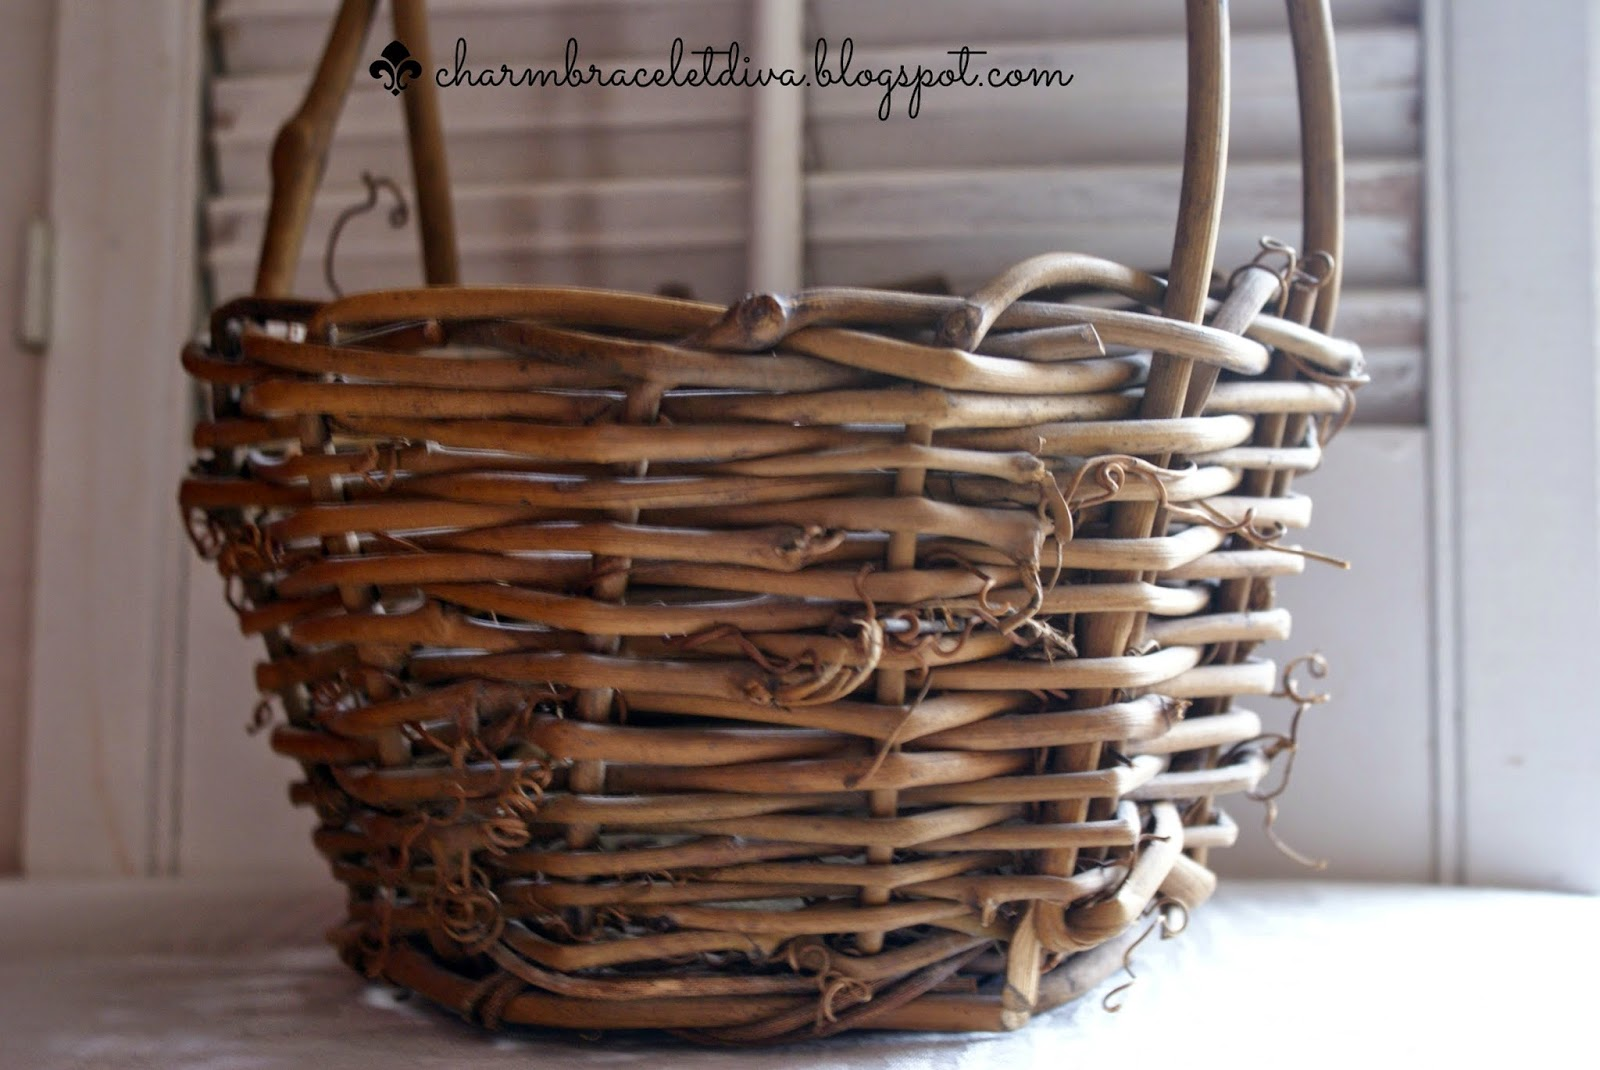 grapevine basket